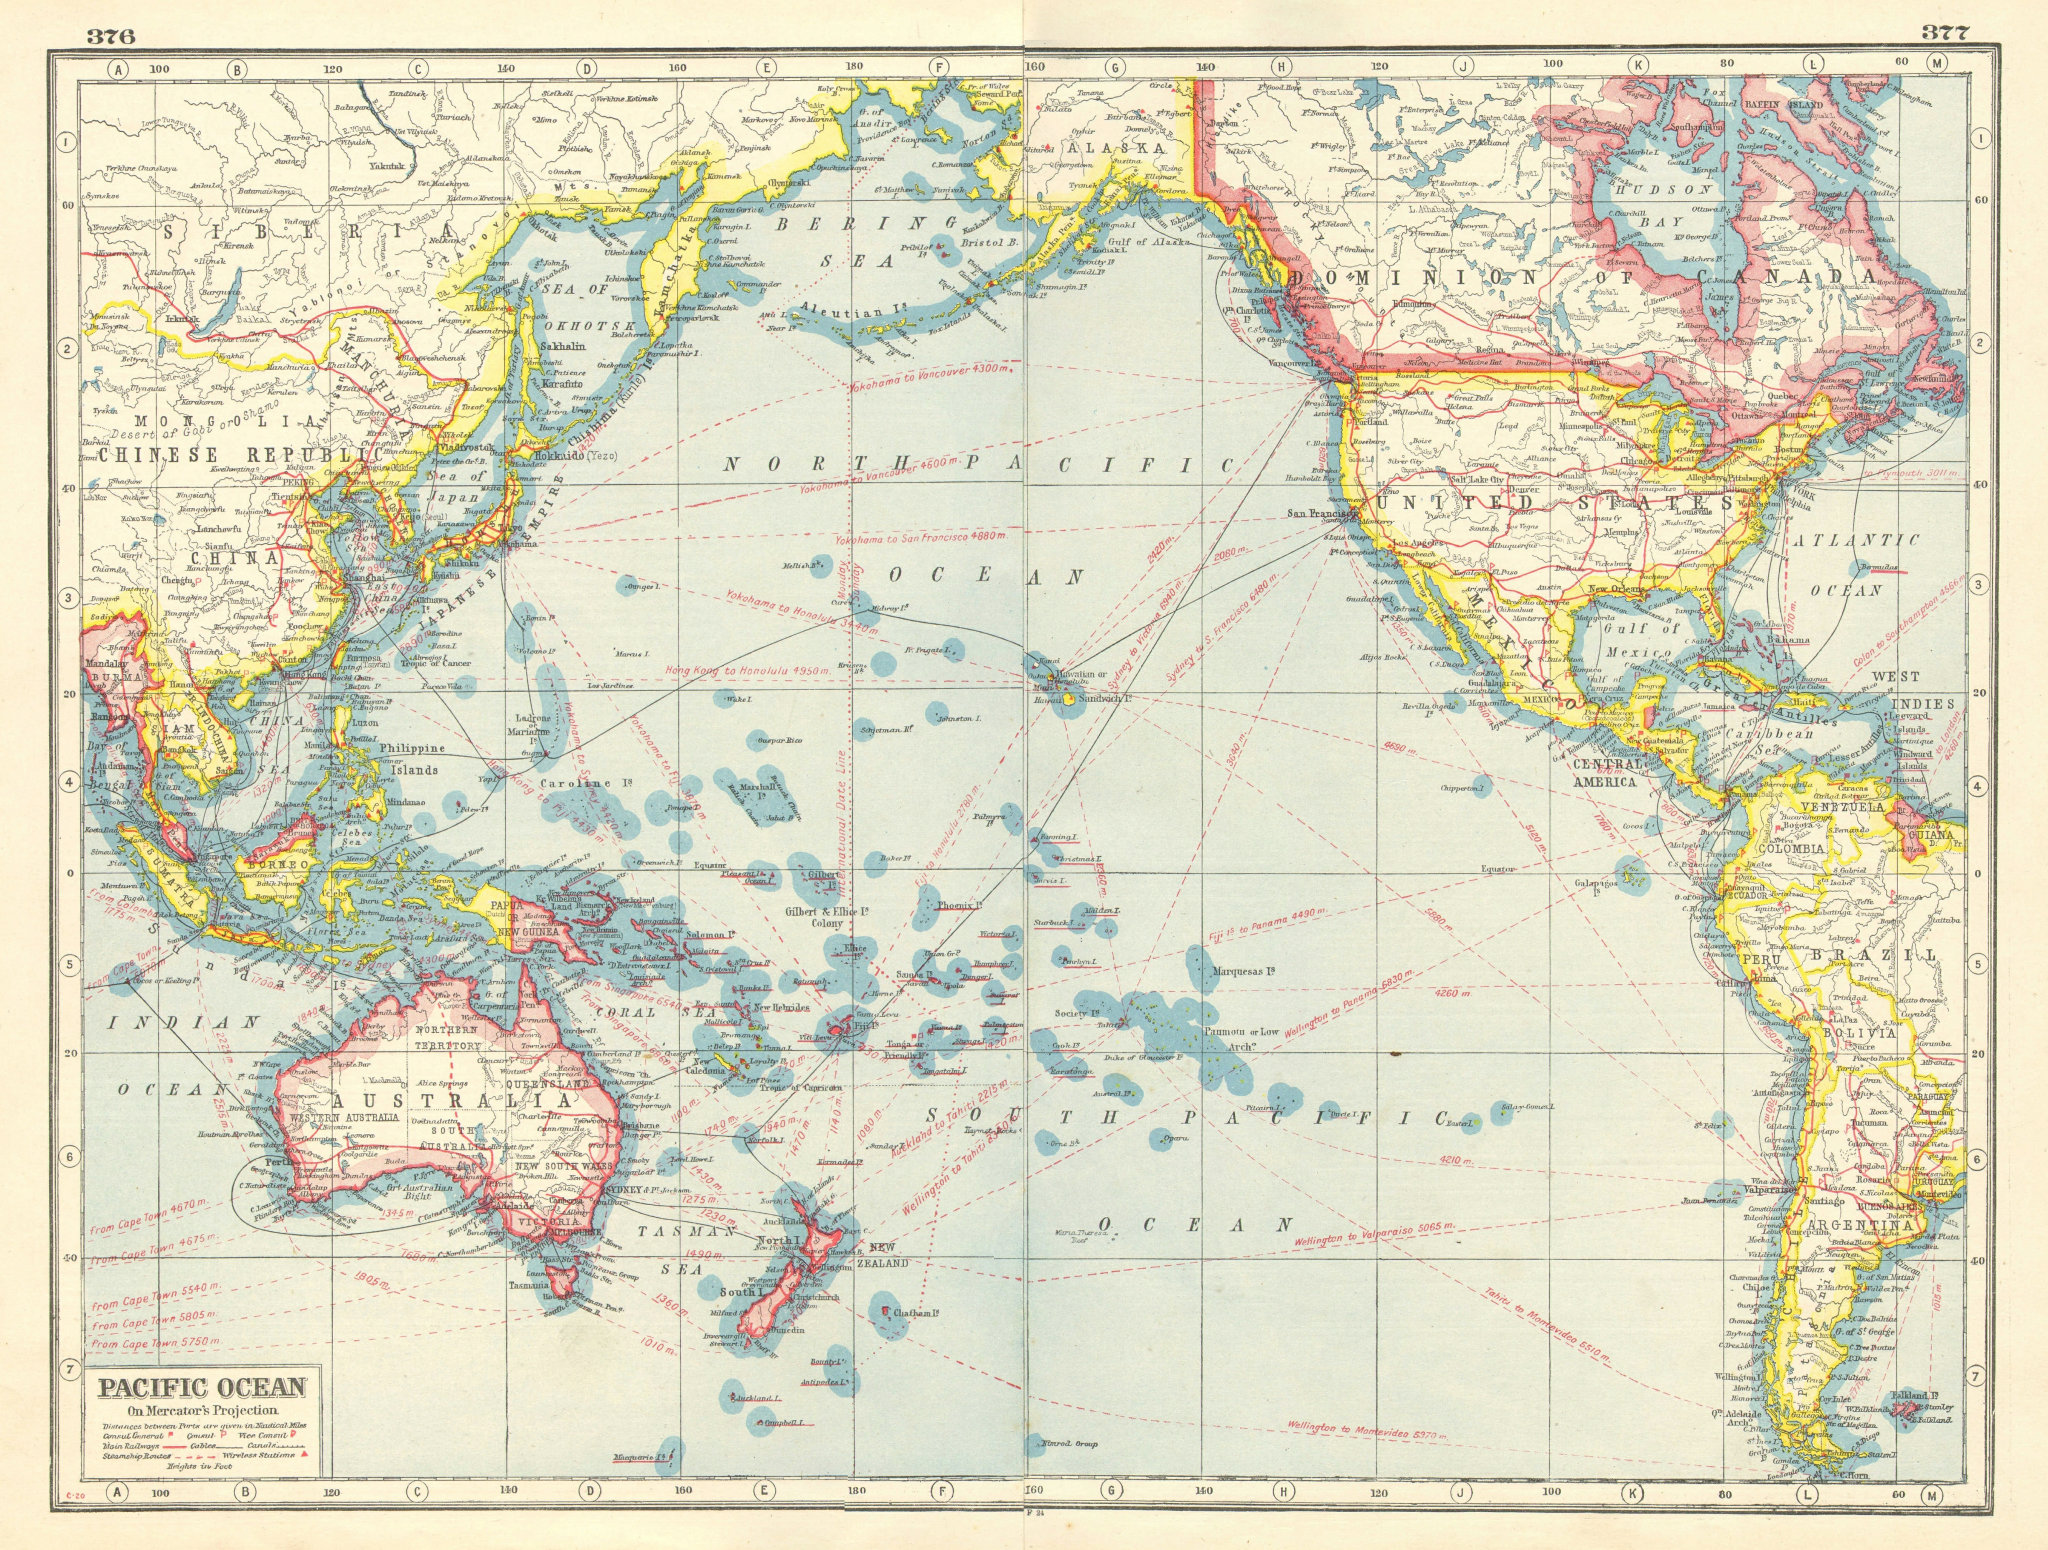 Associate Product PACIFIC OCEAN. Mercator Projection. Railways cables steamship routes 1920 map